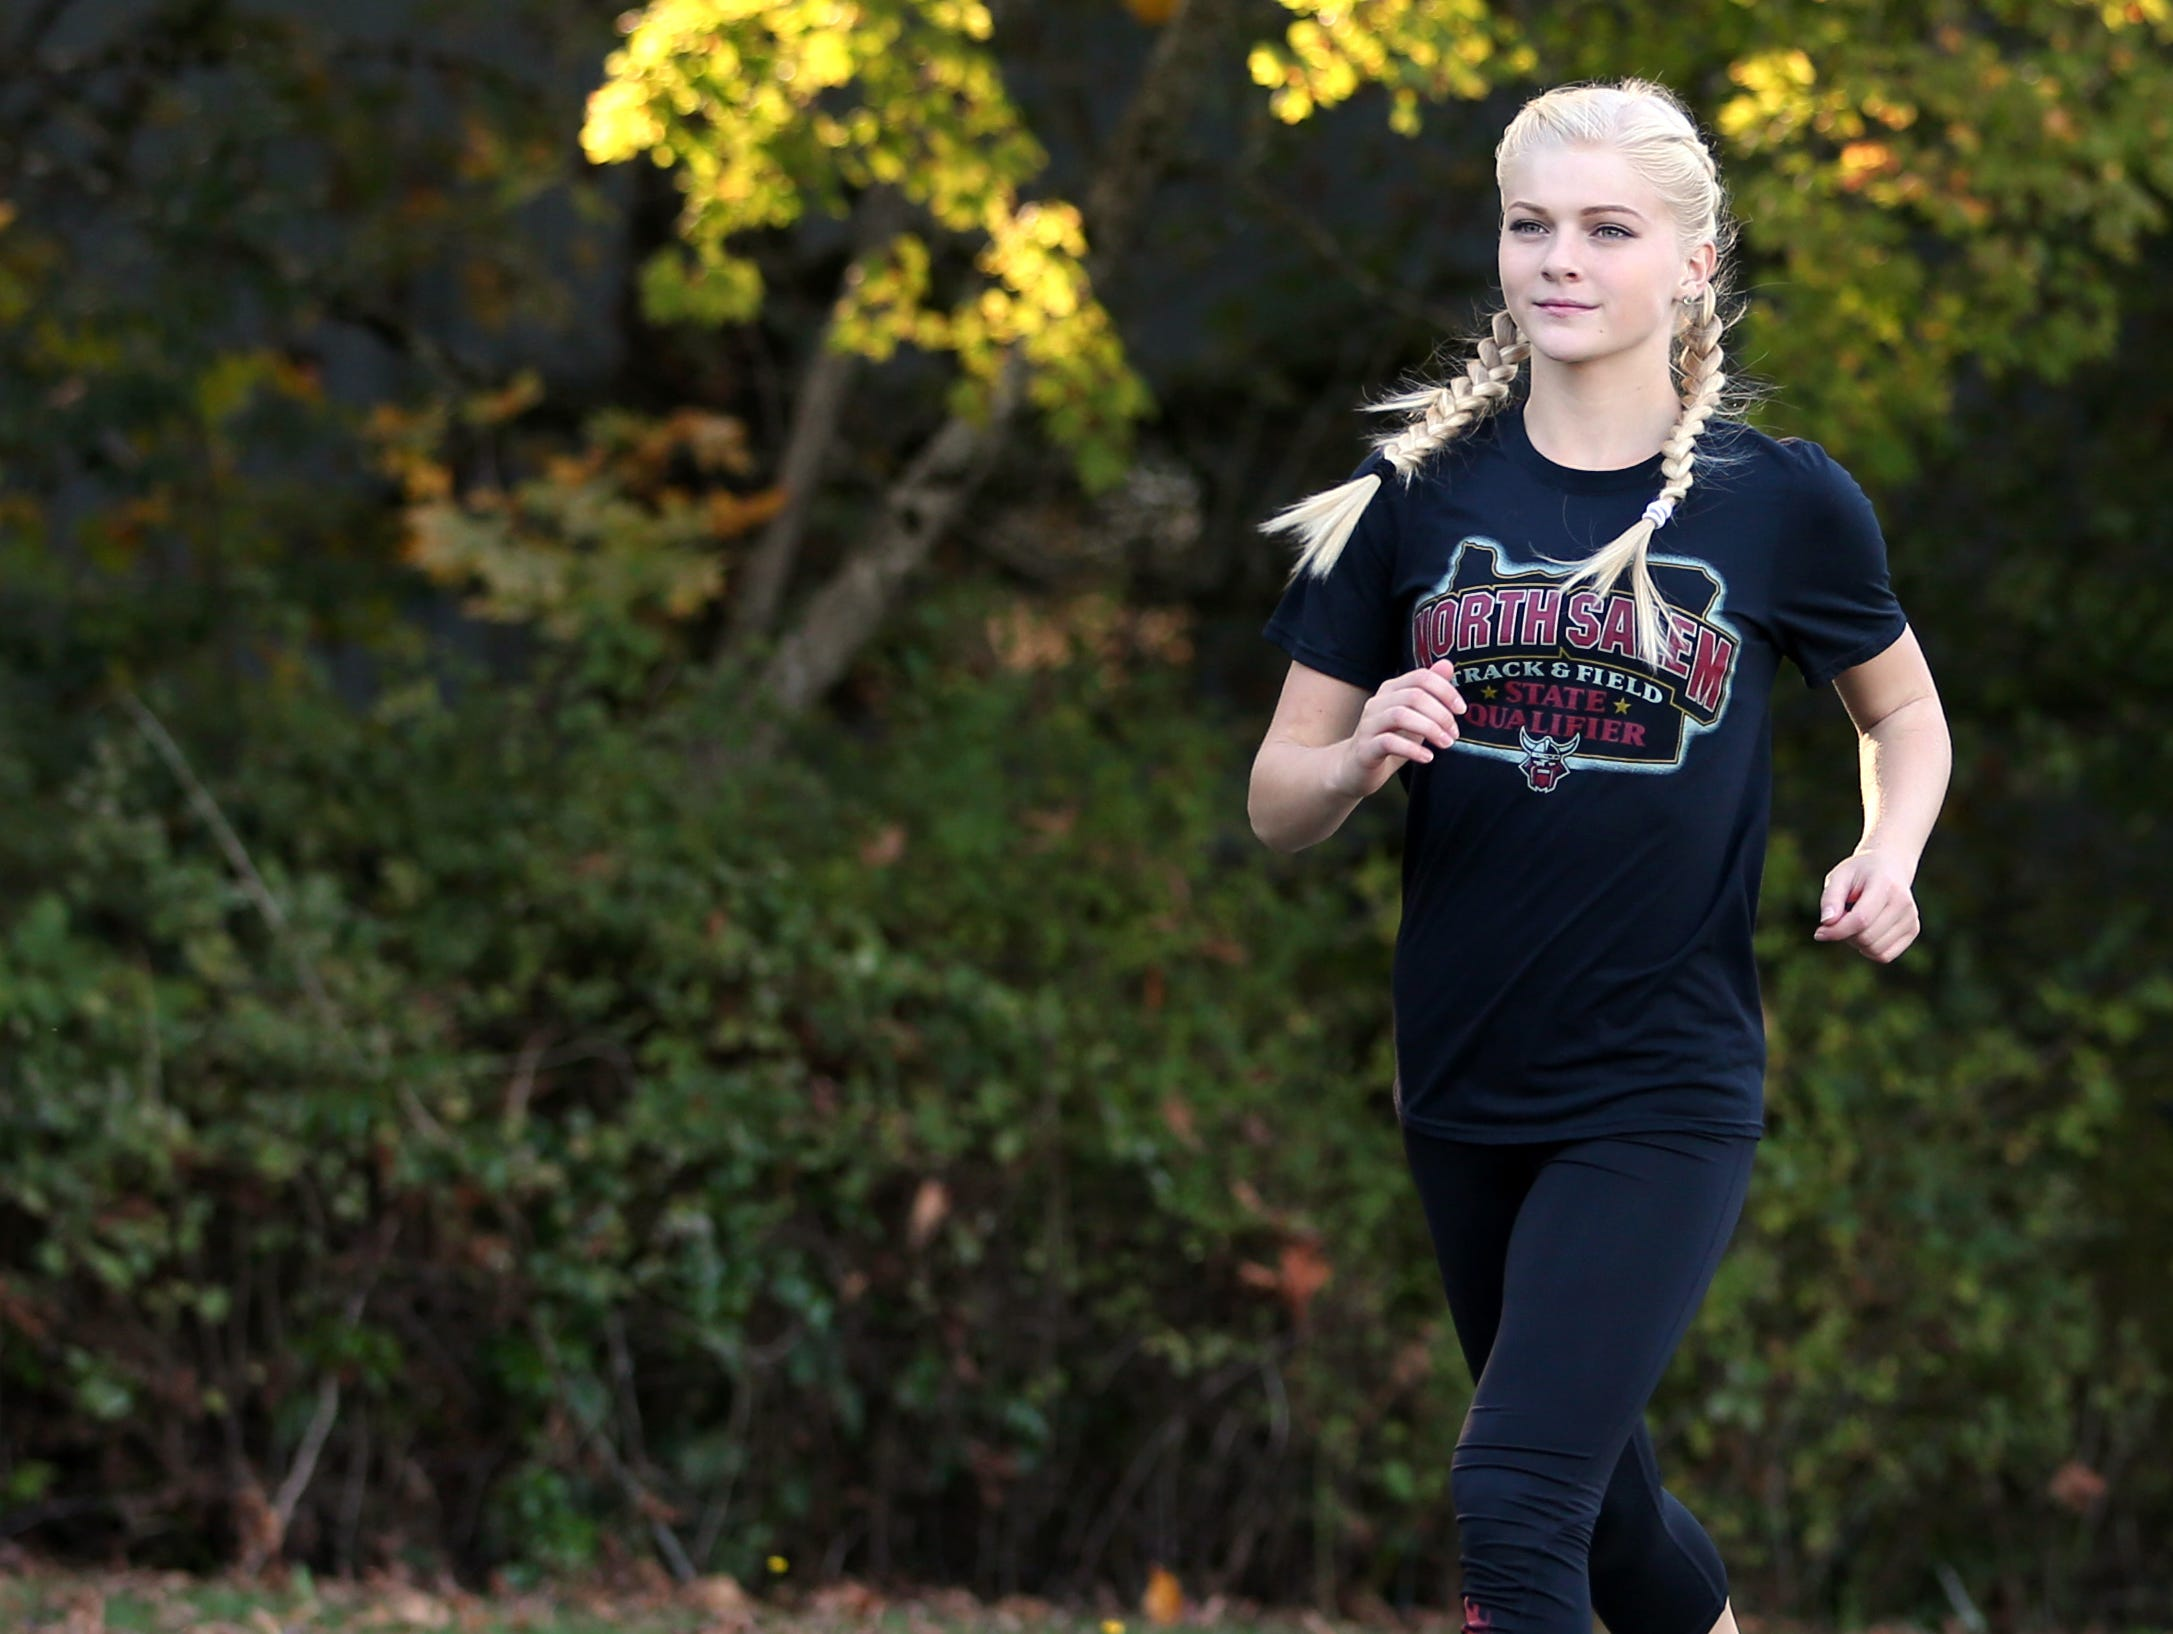 North Salem's Madison Willhoft is photographed after cross country practice on Tuesday, Oct. 11, 2016.